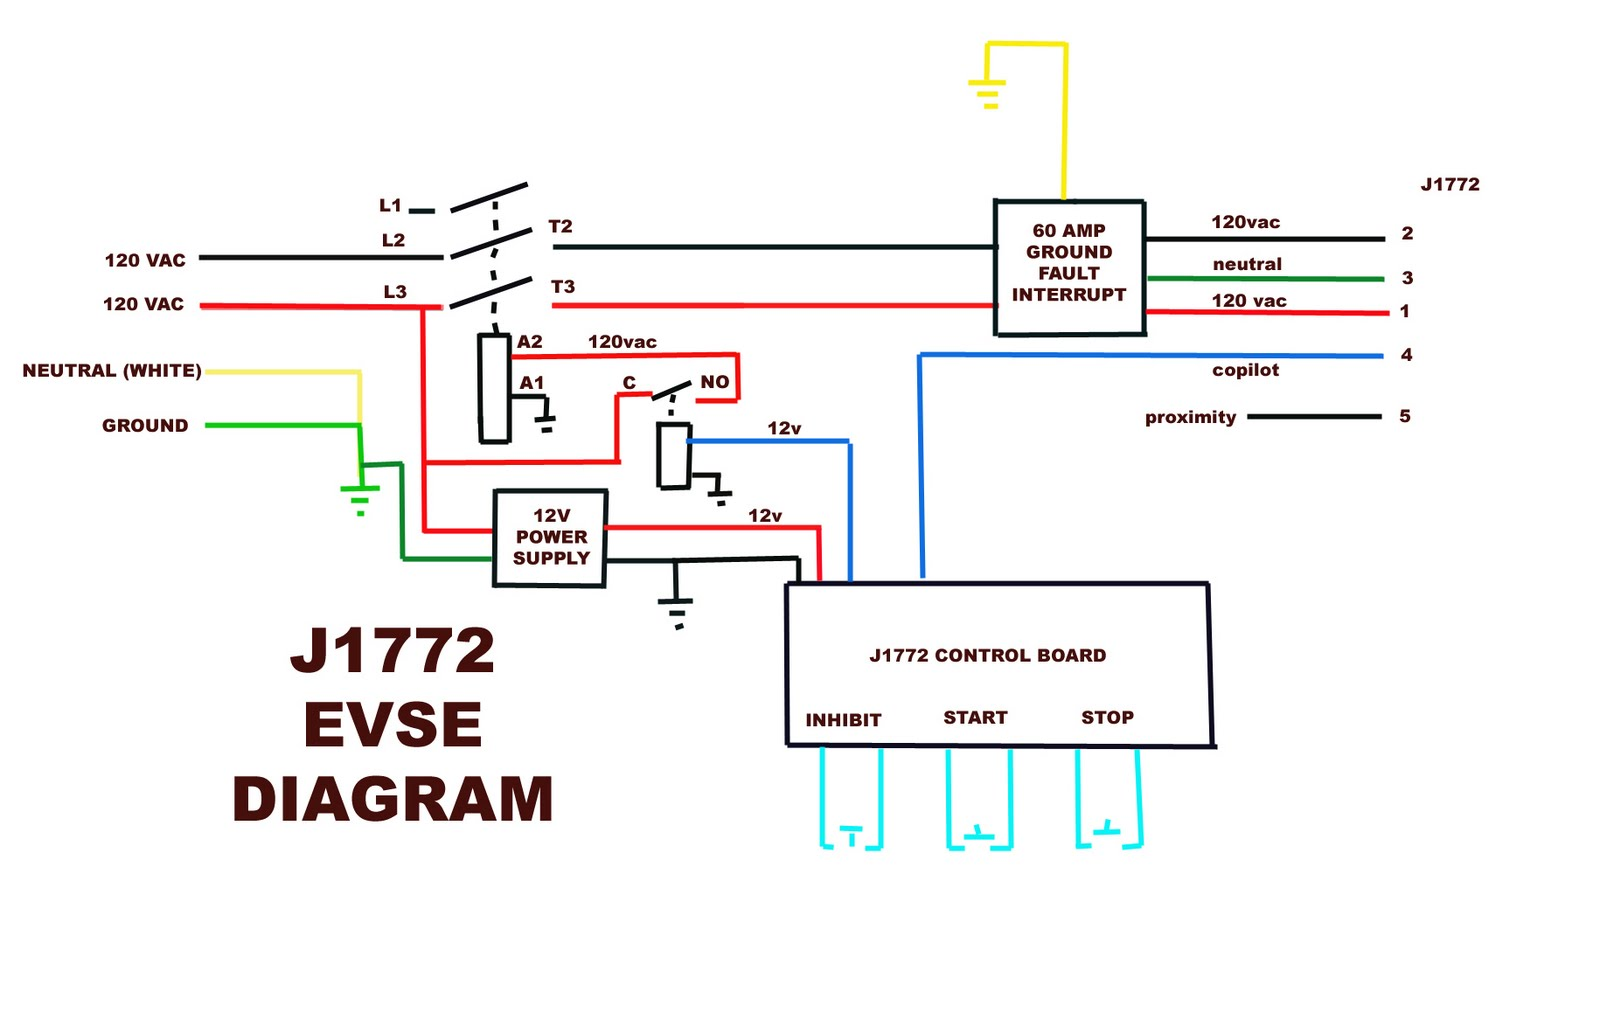 Evtvme Plug Wiring Diagram For Leviton Also Dc Power Jack Connector Male David Kerzel Was Sufficiently Wowed By Our Combination Of His Billet Aluminum J1772 Socket And The Gas Cap That Hes Going To Get Caps